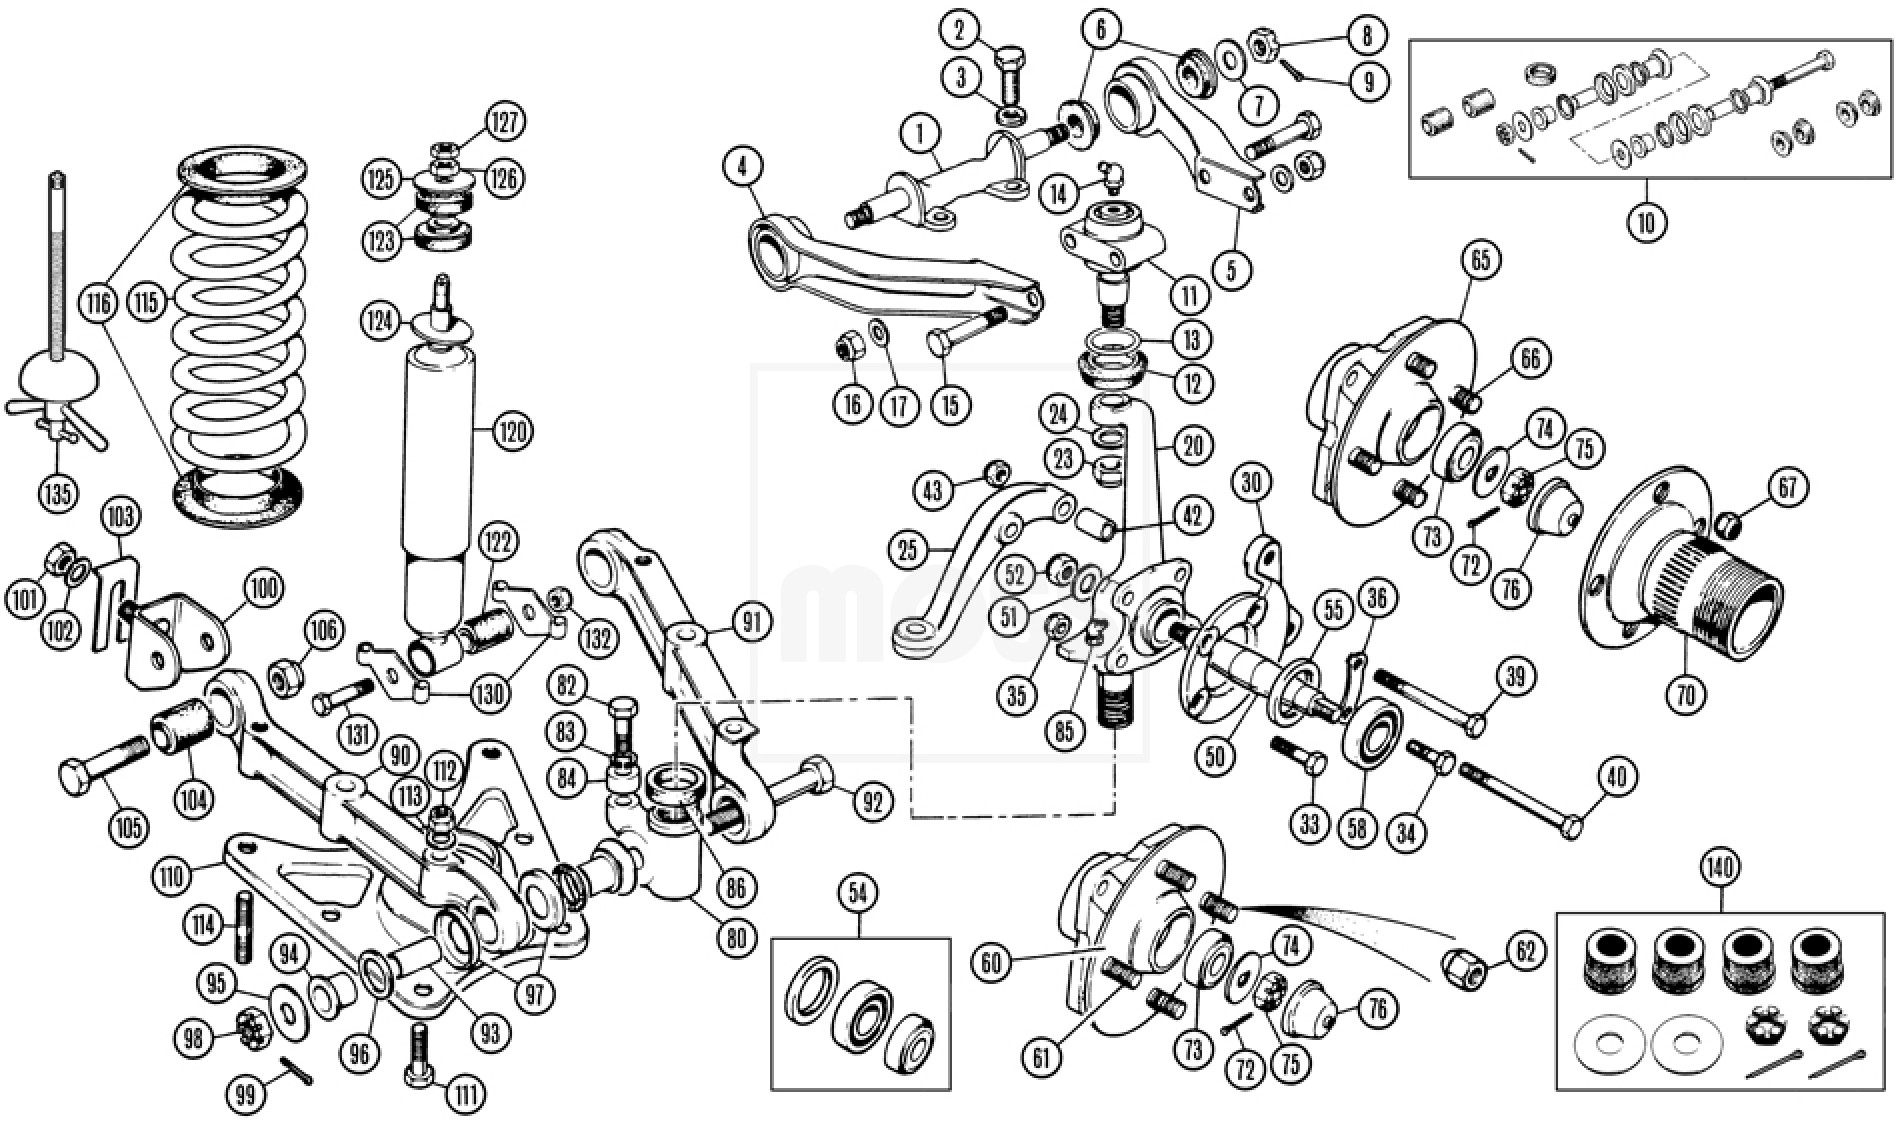 03 jaguar x type rear suspension